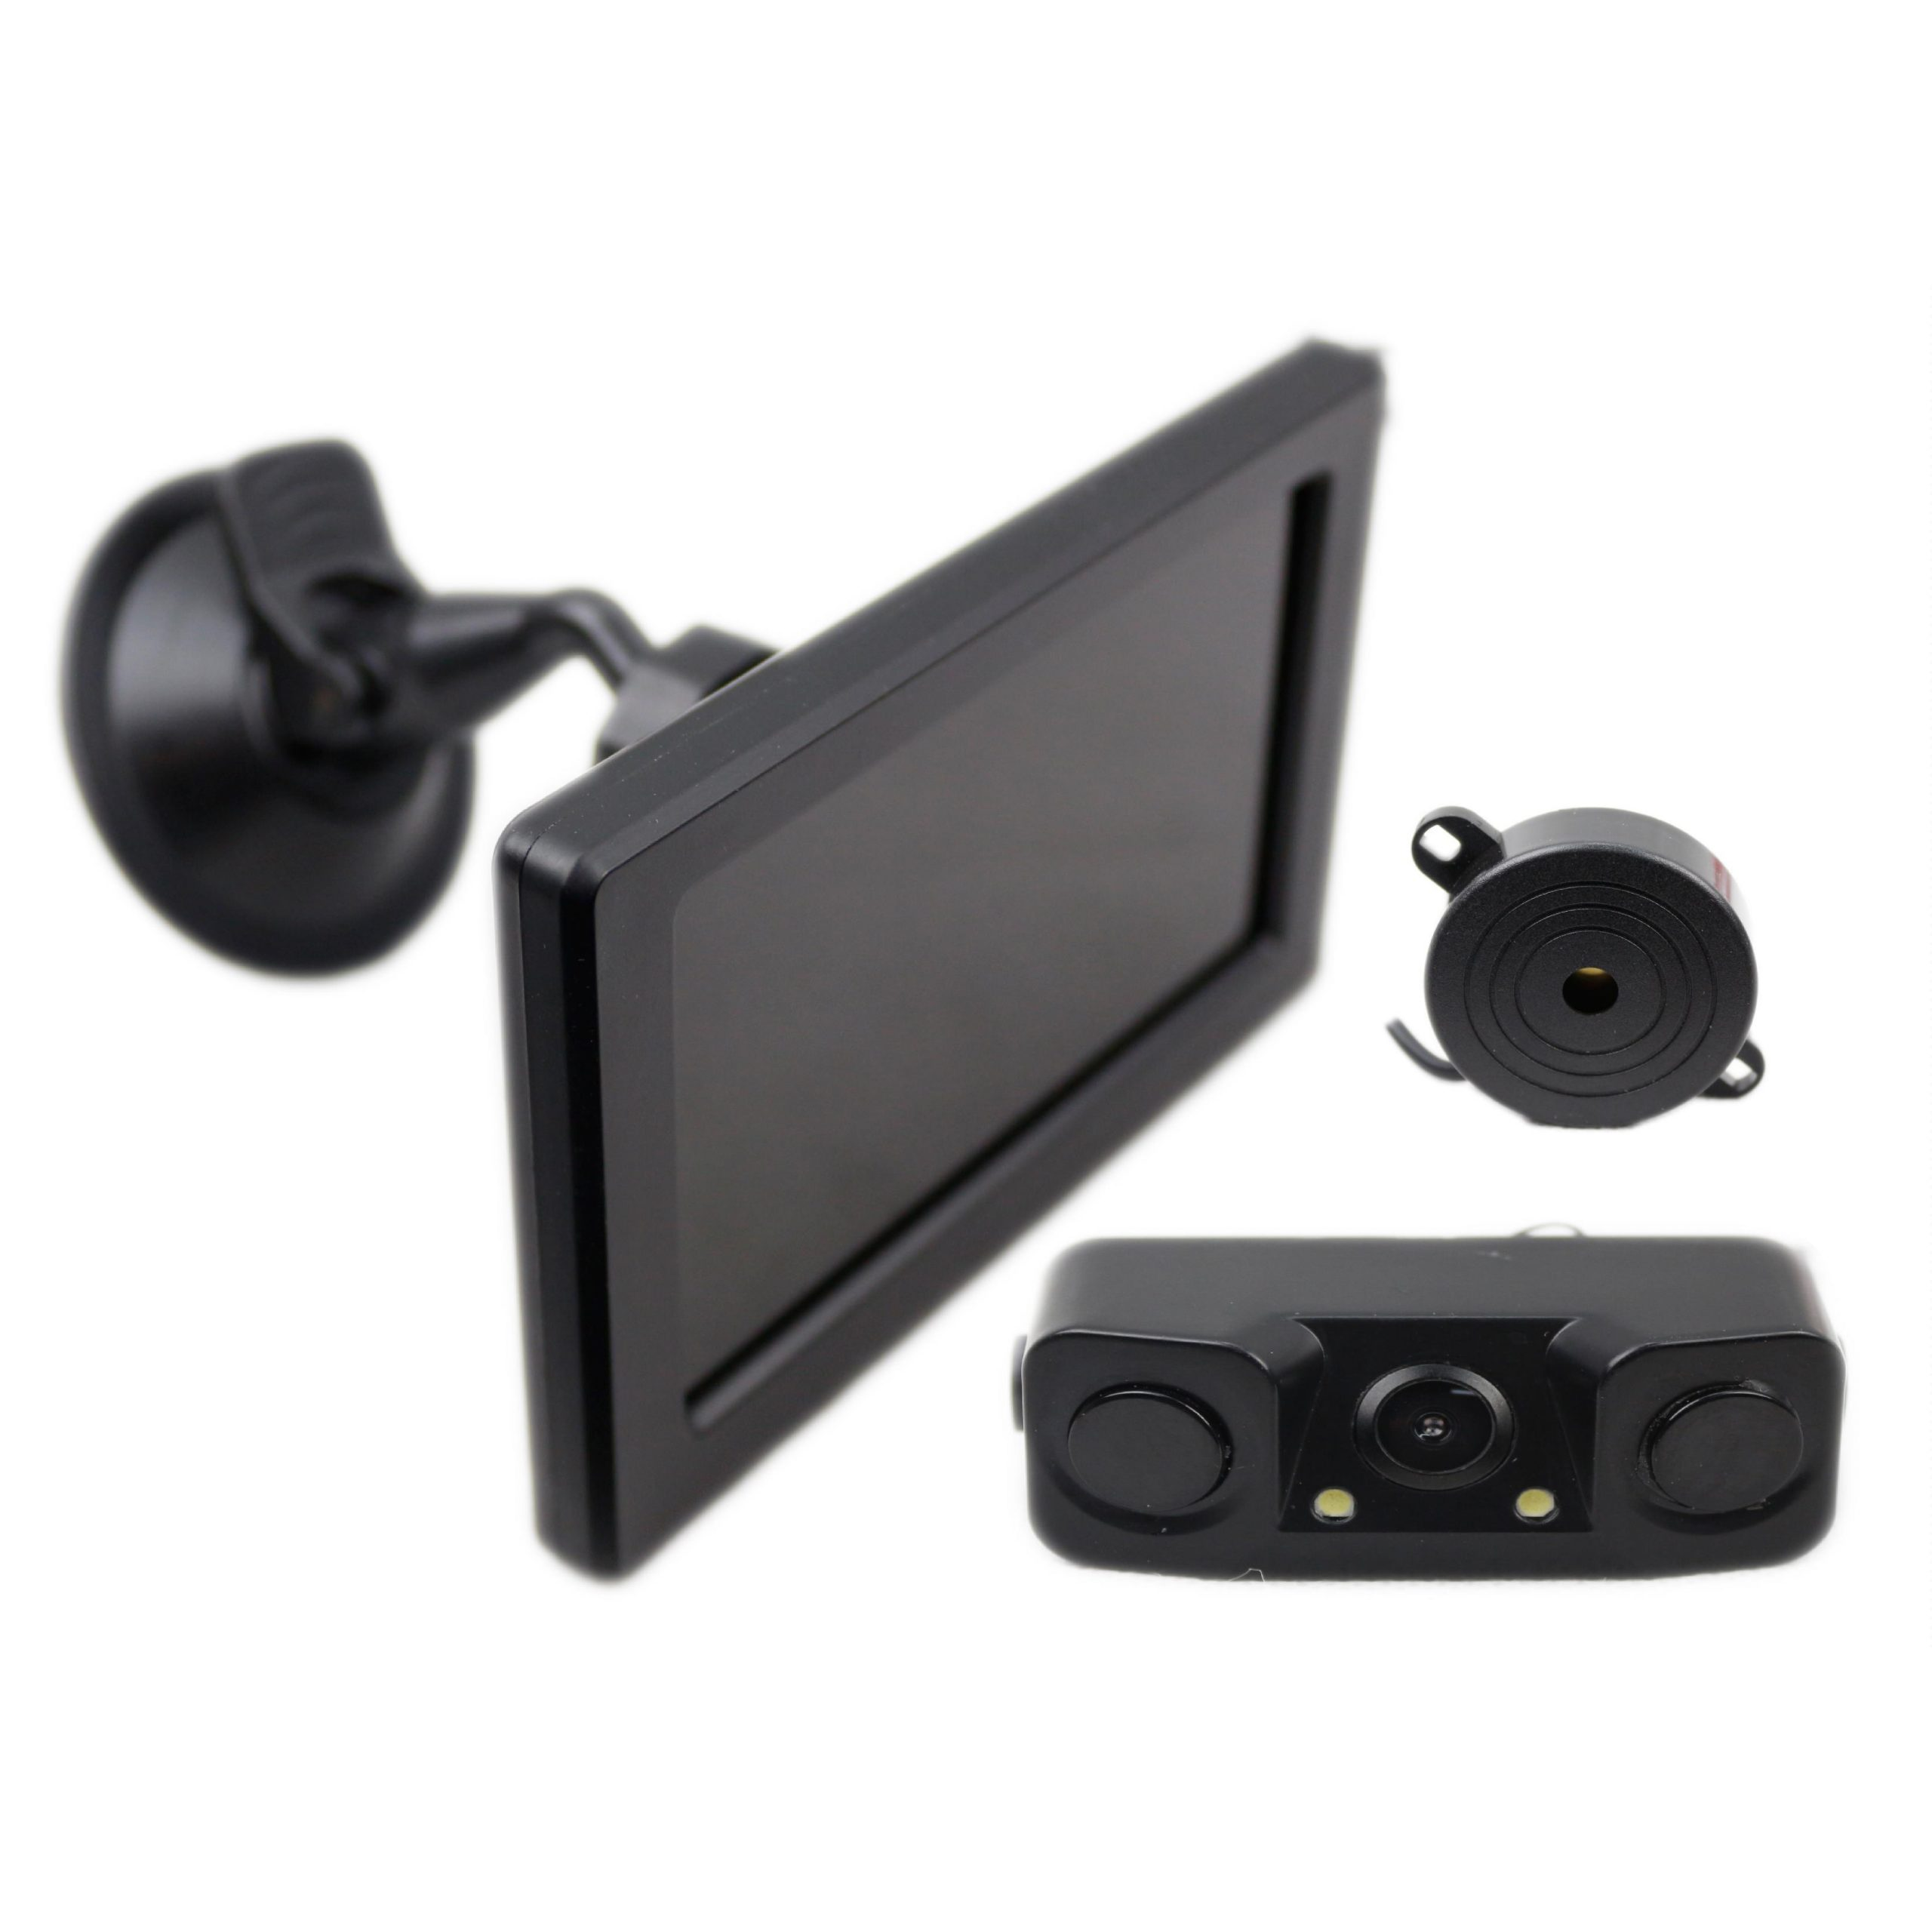 Smartcar RCS43M Reverse Camera with built in Reverse Sensors and 4.3″ Monitor